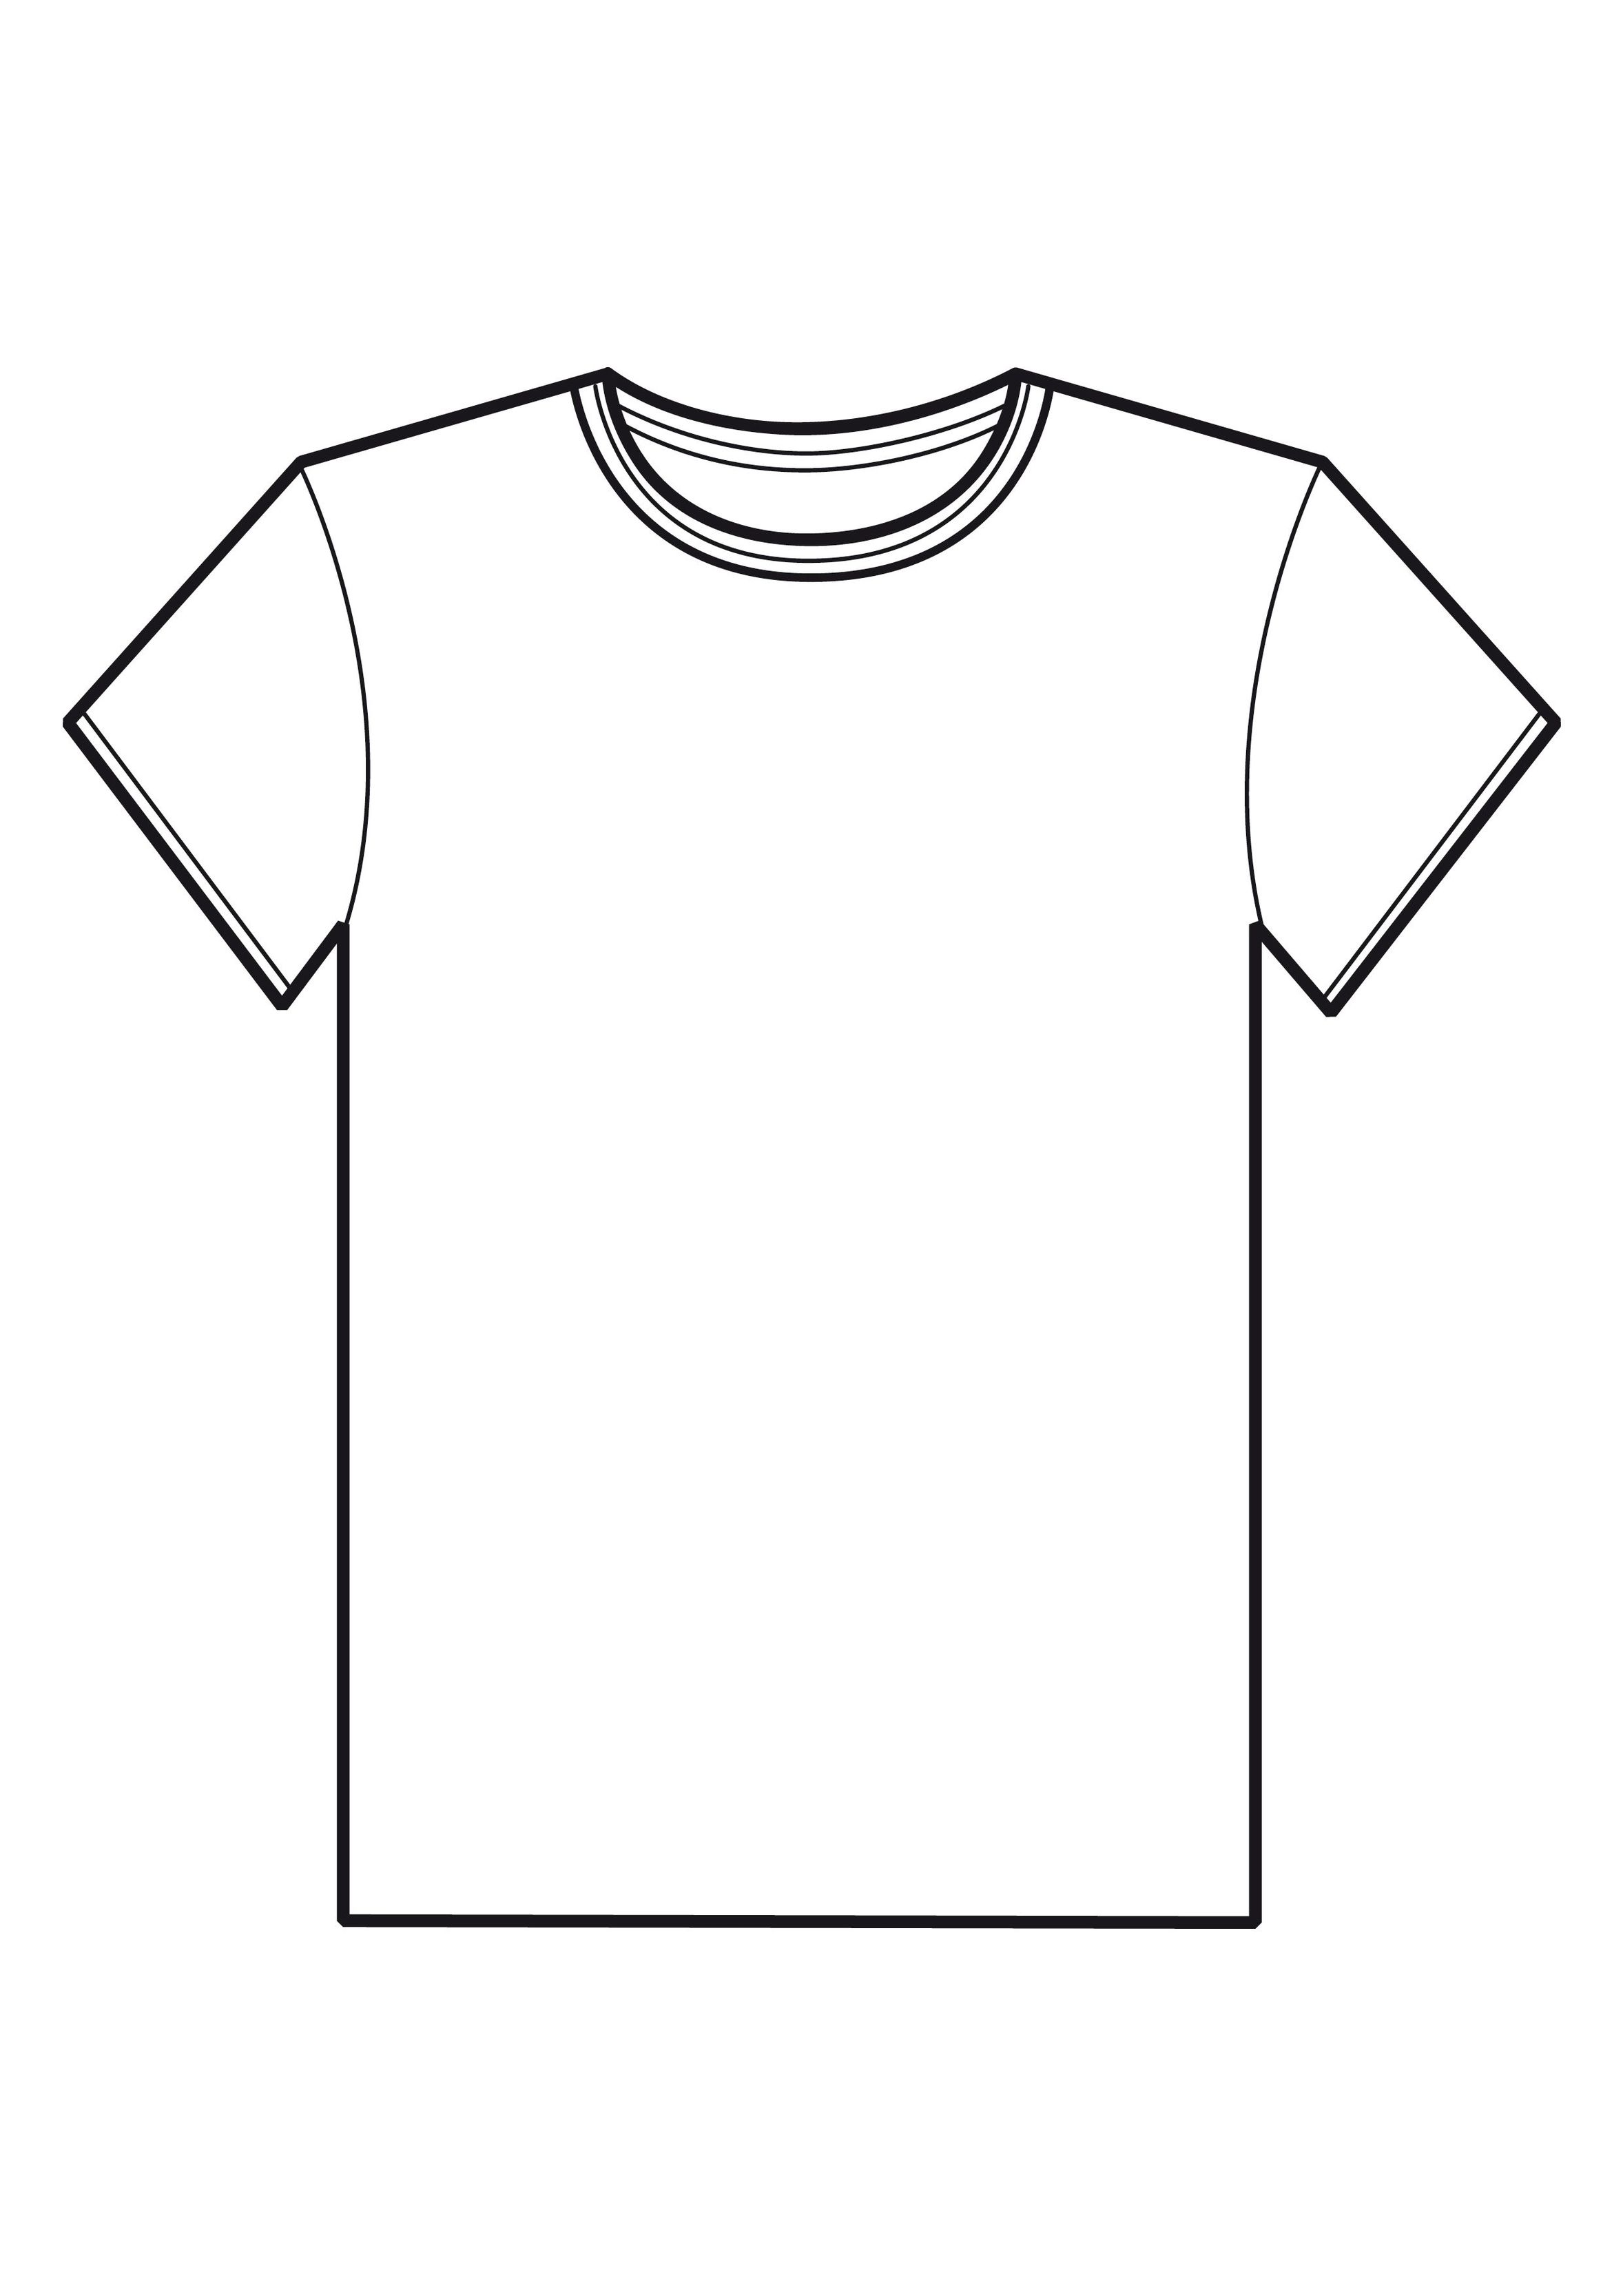 t shirt clipart black and .-t shirt clipart black and .-10